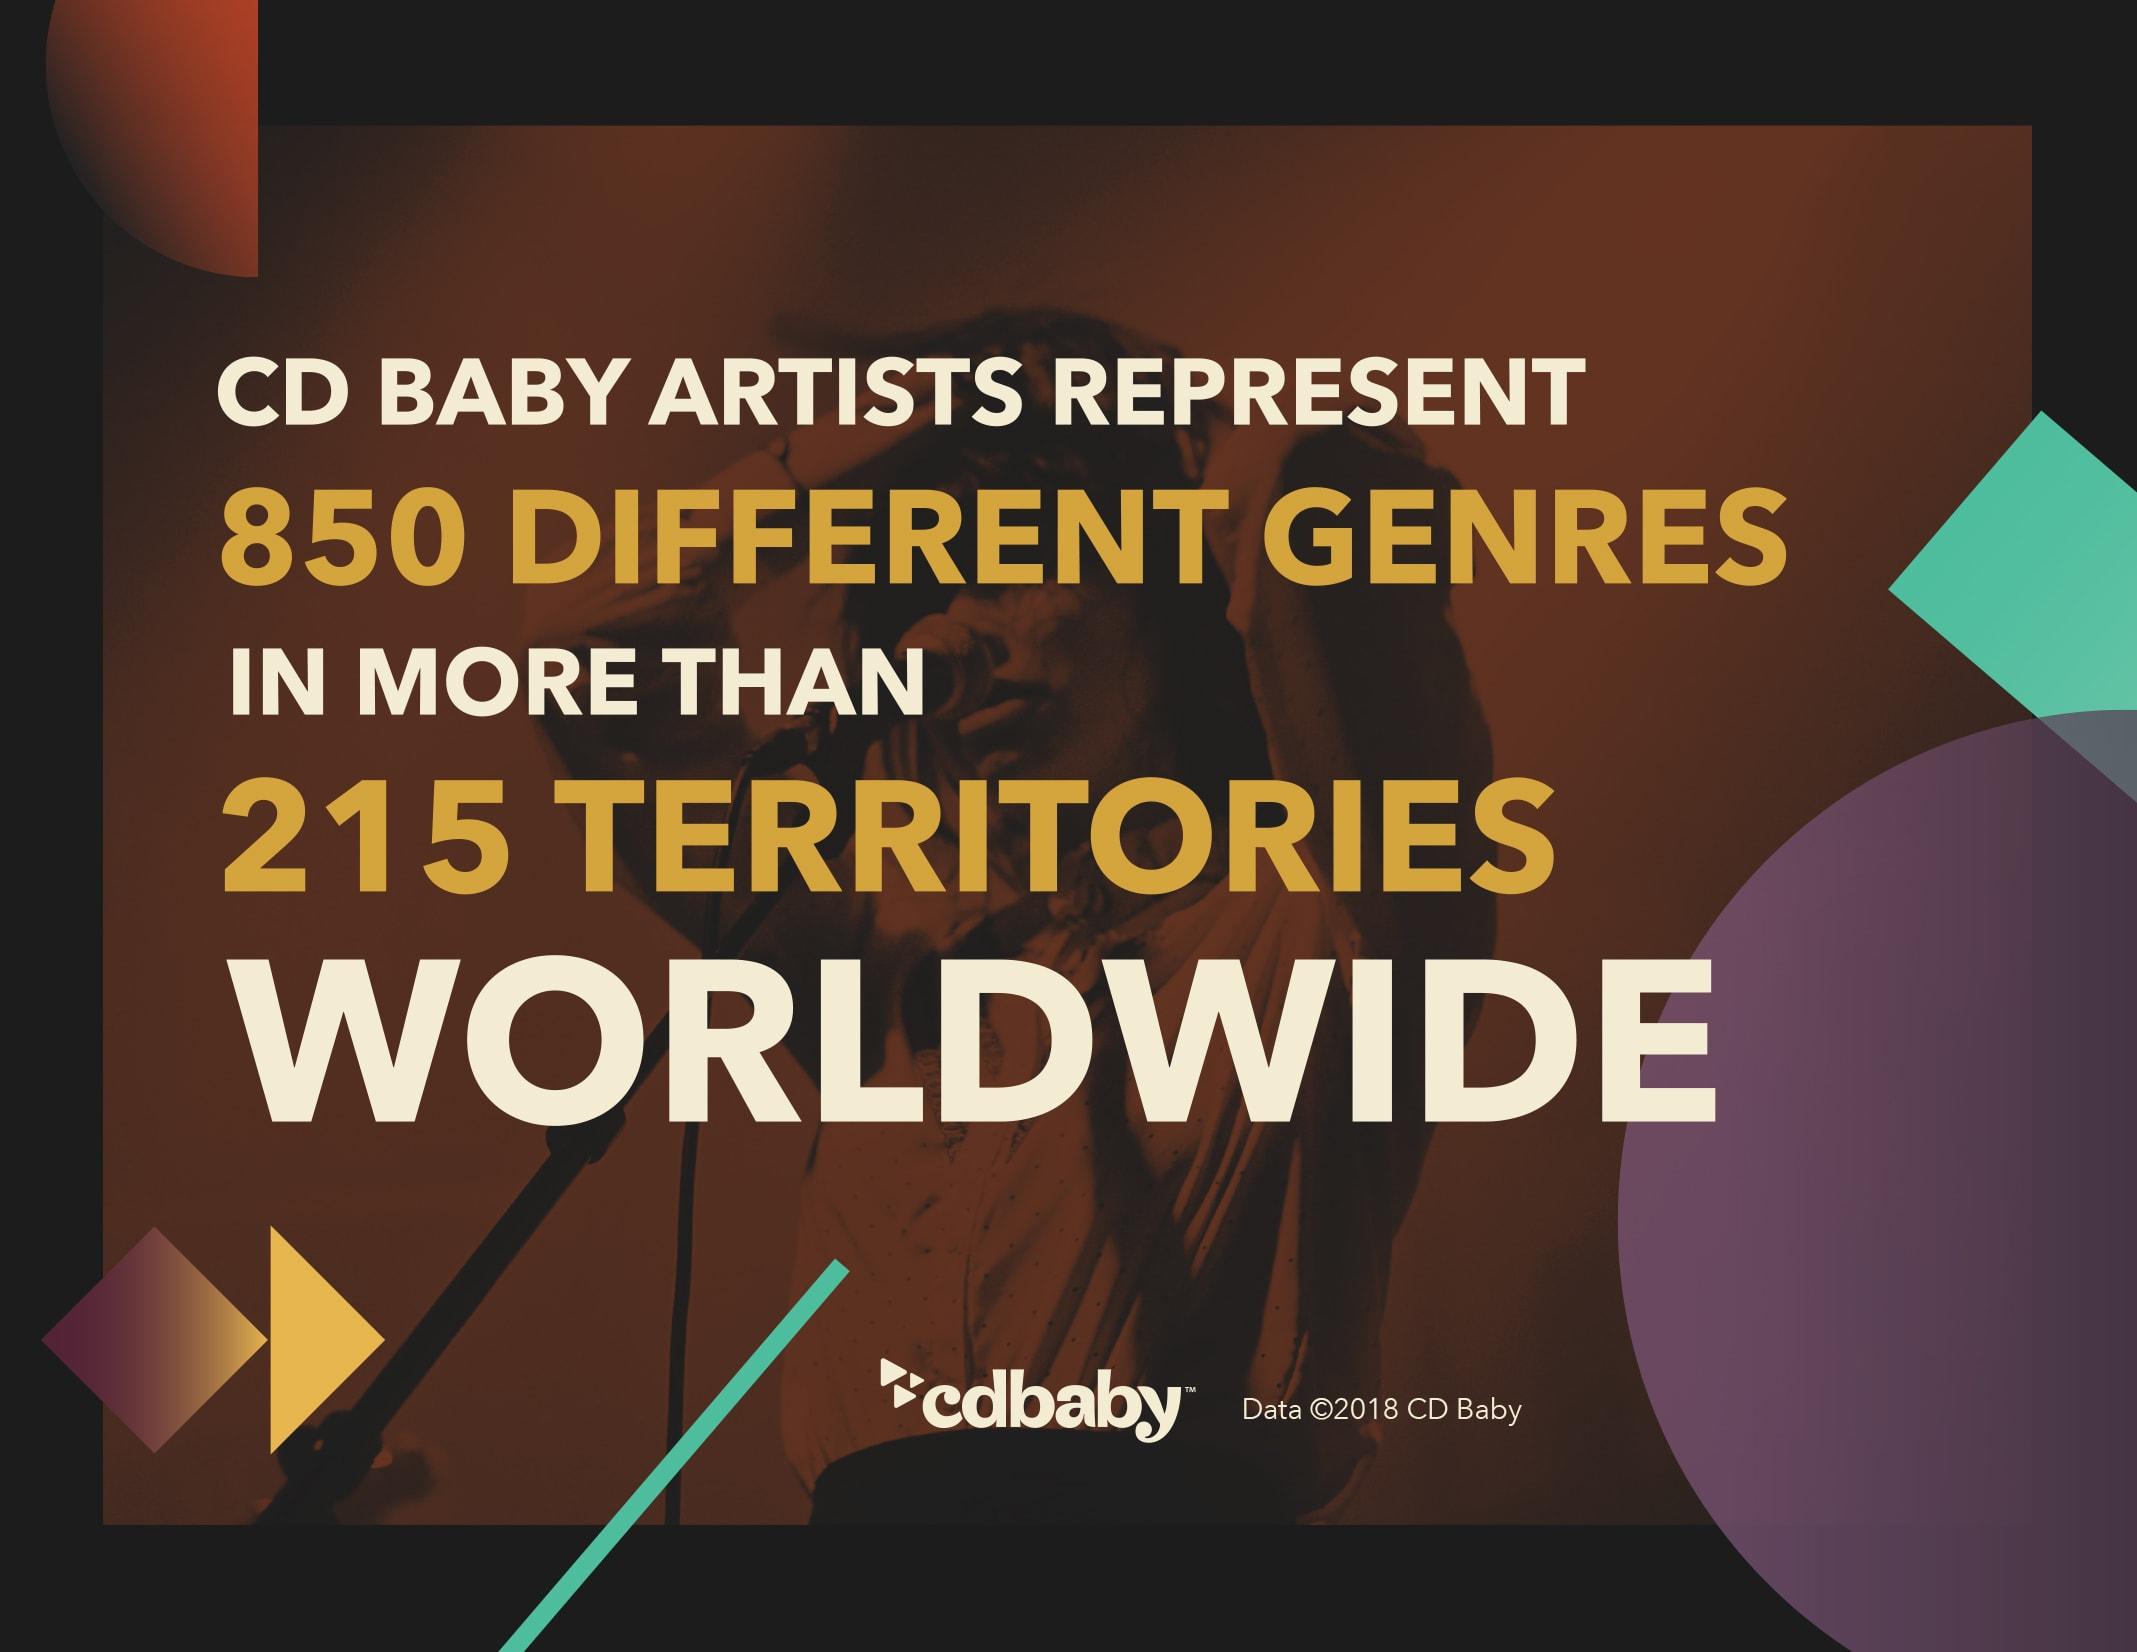 cdbb-infographic-genre-territories-stats-as-of-end-2017.jpg